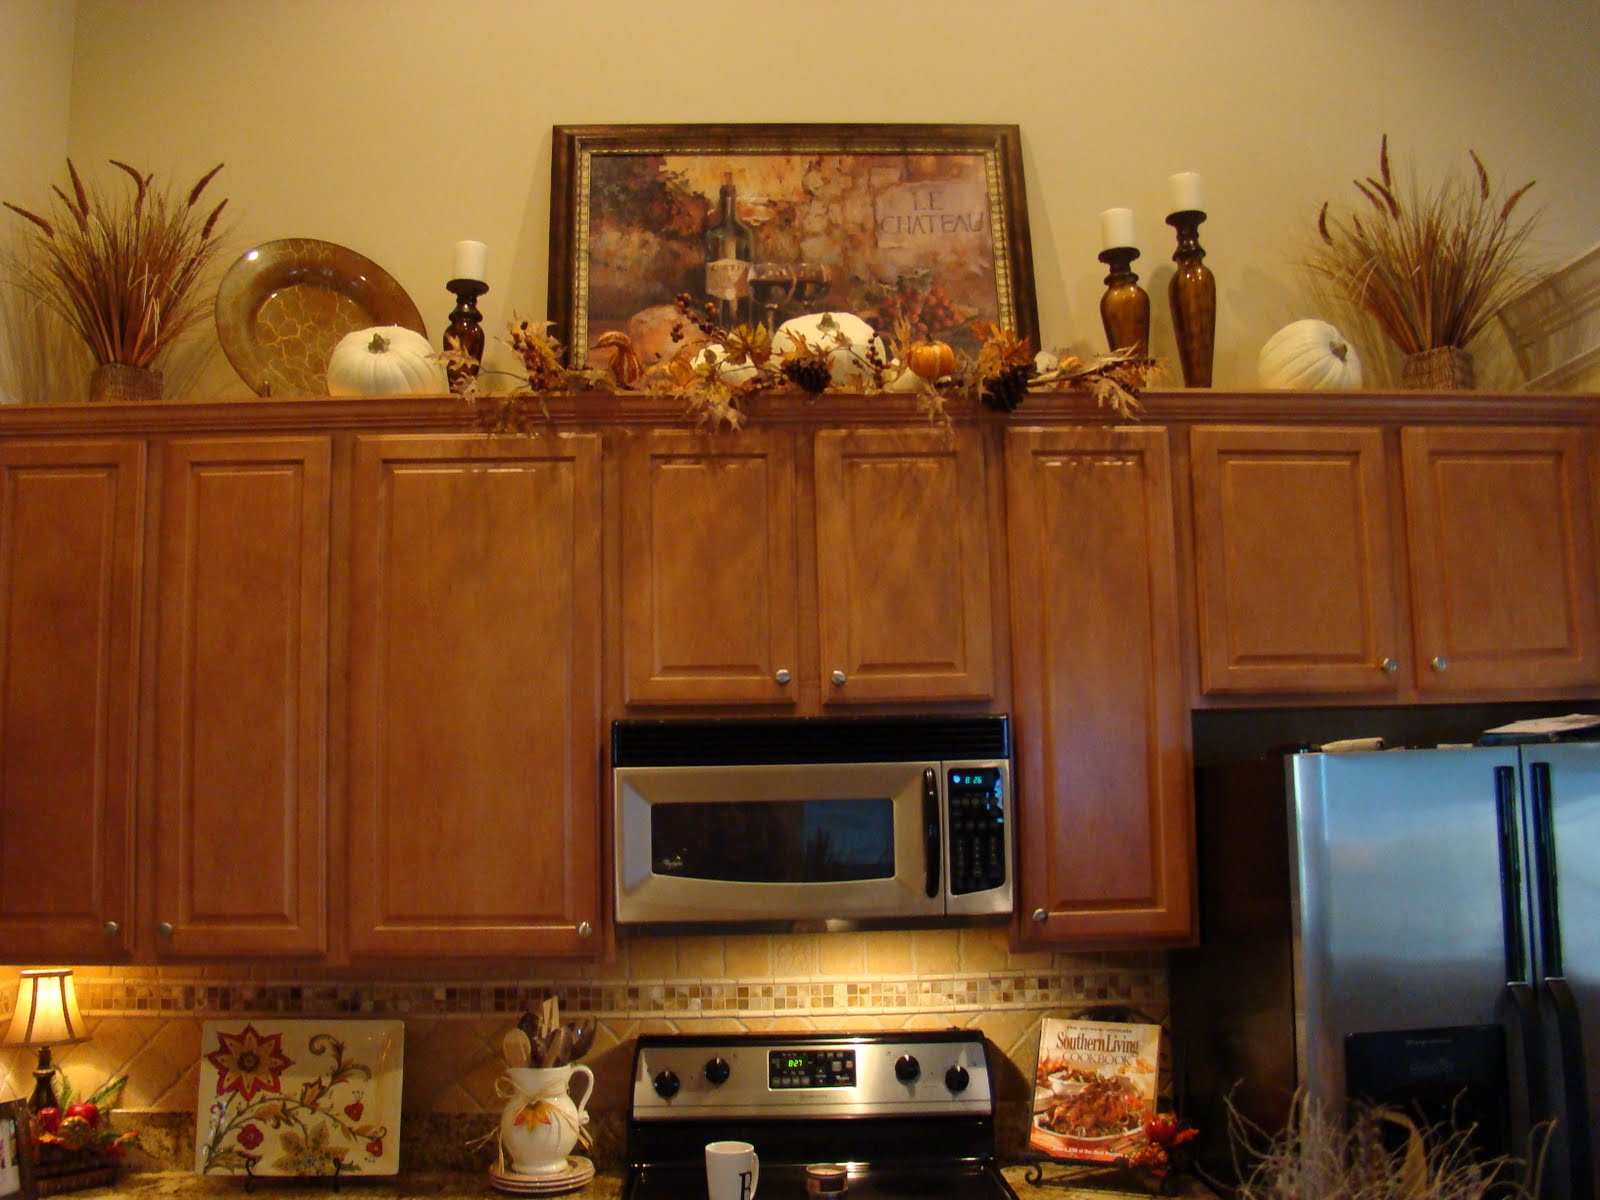 Adventures In Decorating Our Fall Kitchen: Adventures In Decorating: Fall Is In The Air